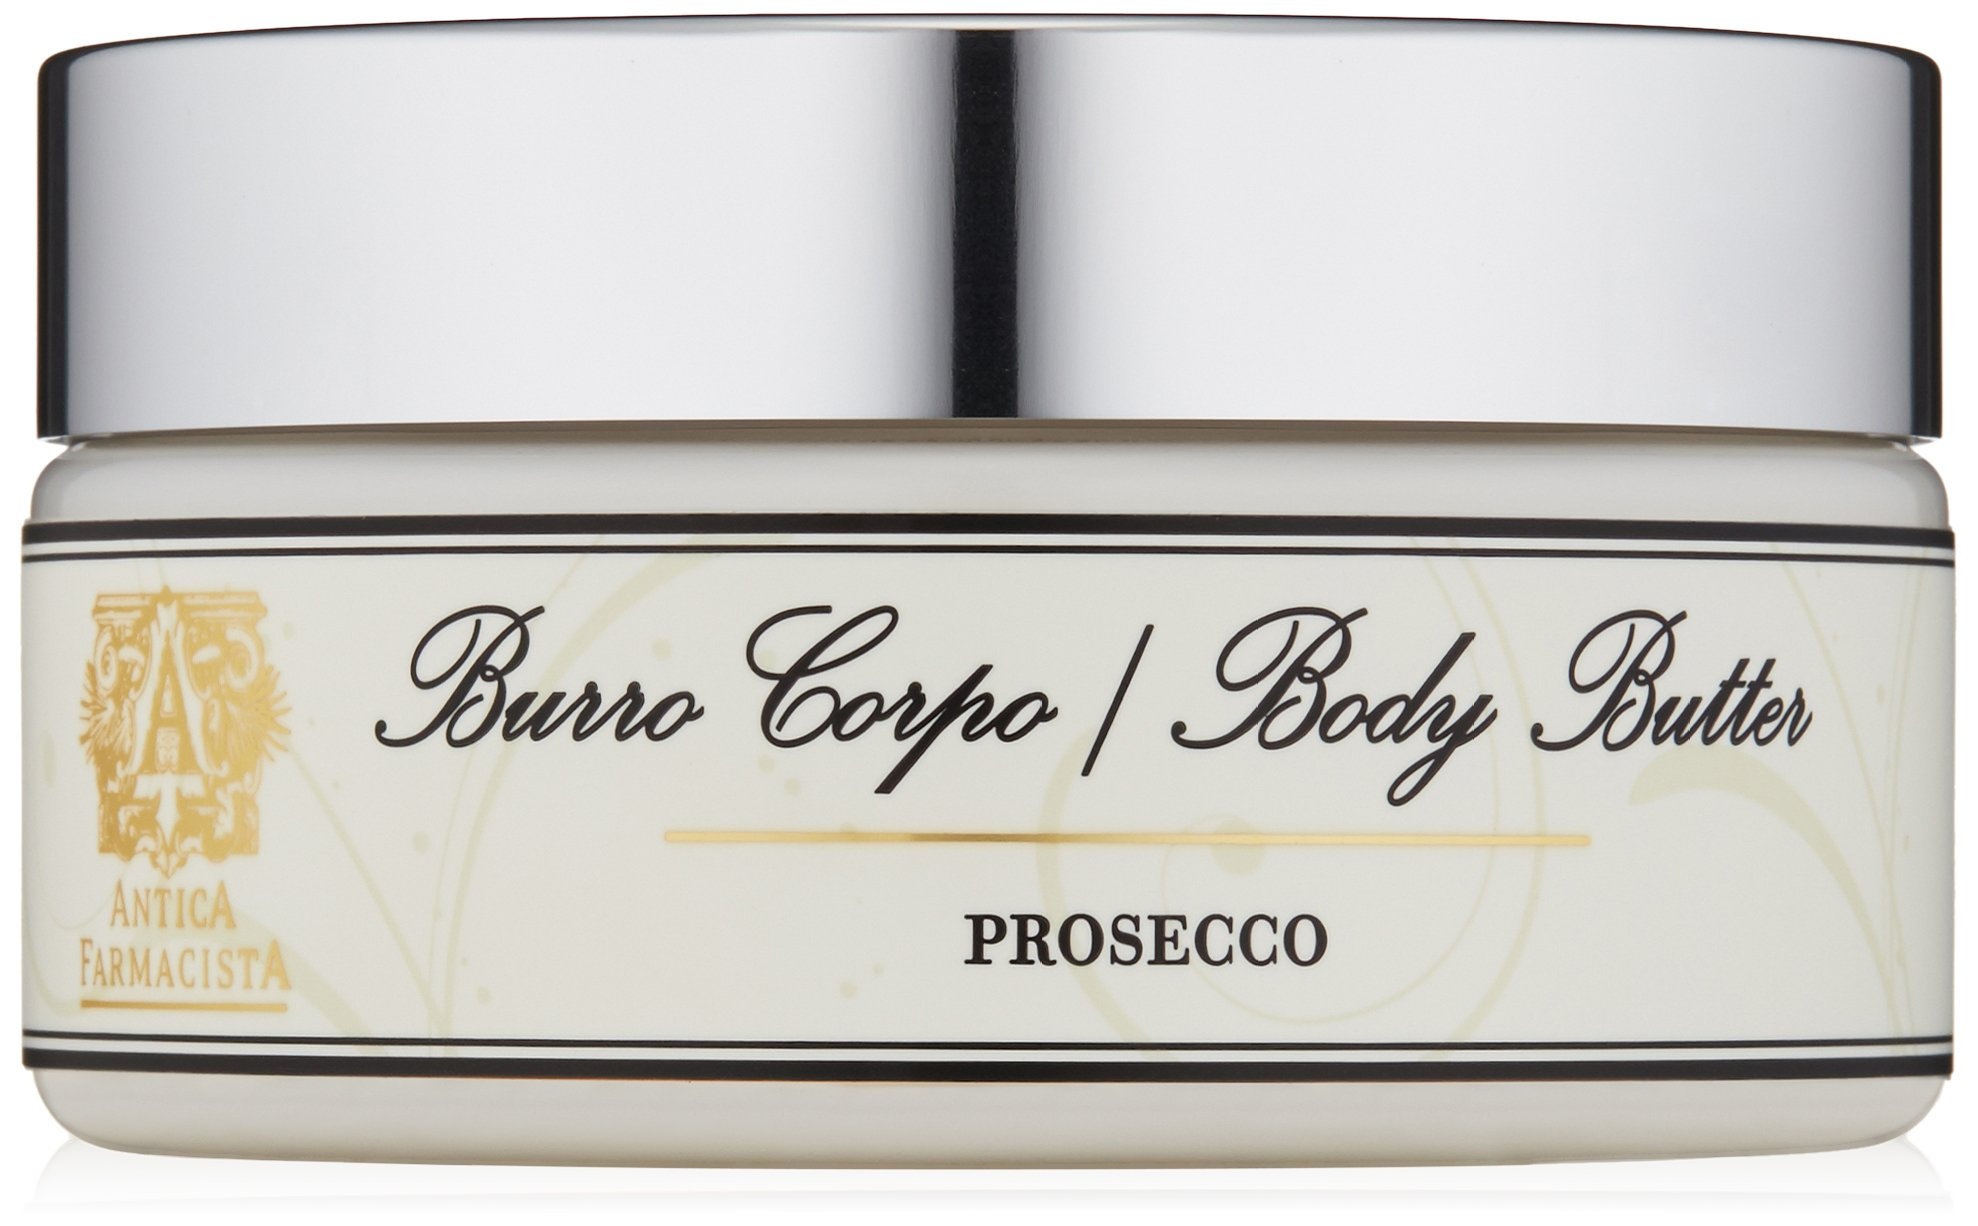 Antica Farmacista Prosecco Body Butter, 8 Oz